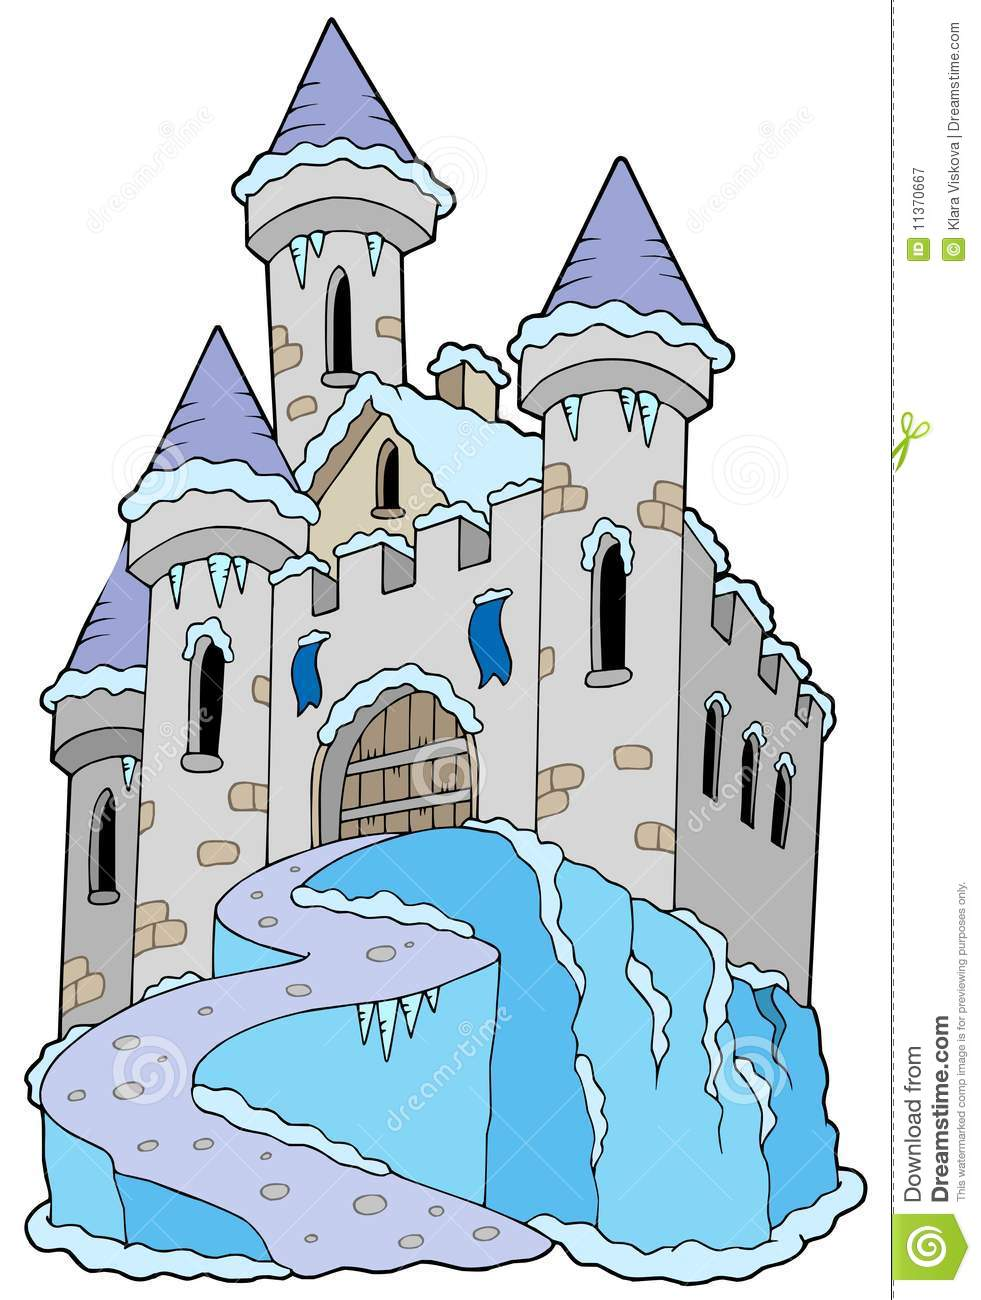 Stock vector of cartoon illustration castle isolated on white - Frozen Castle Royalty Free Stock Photography Image 11370667